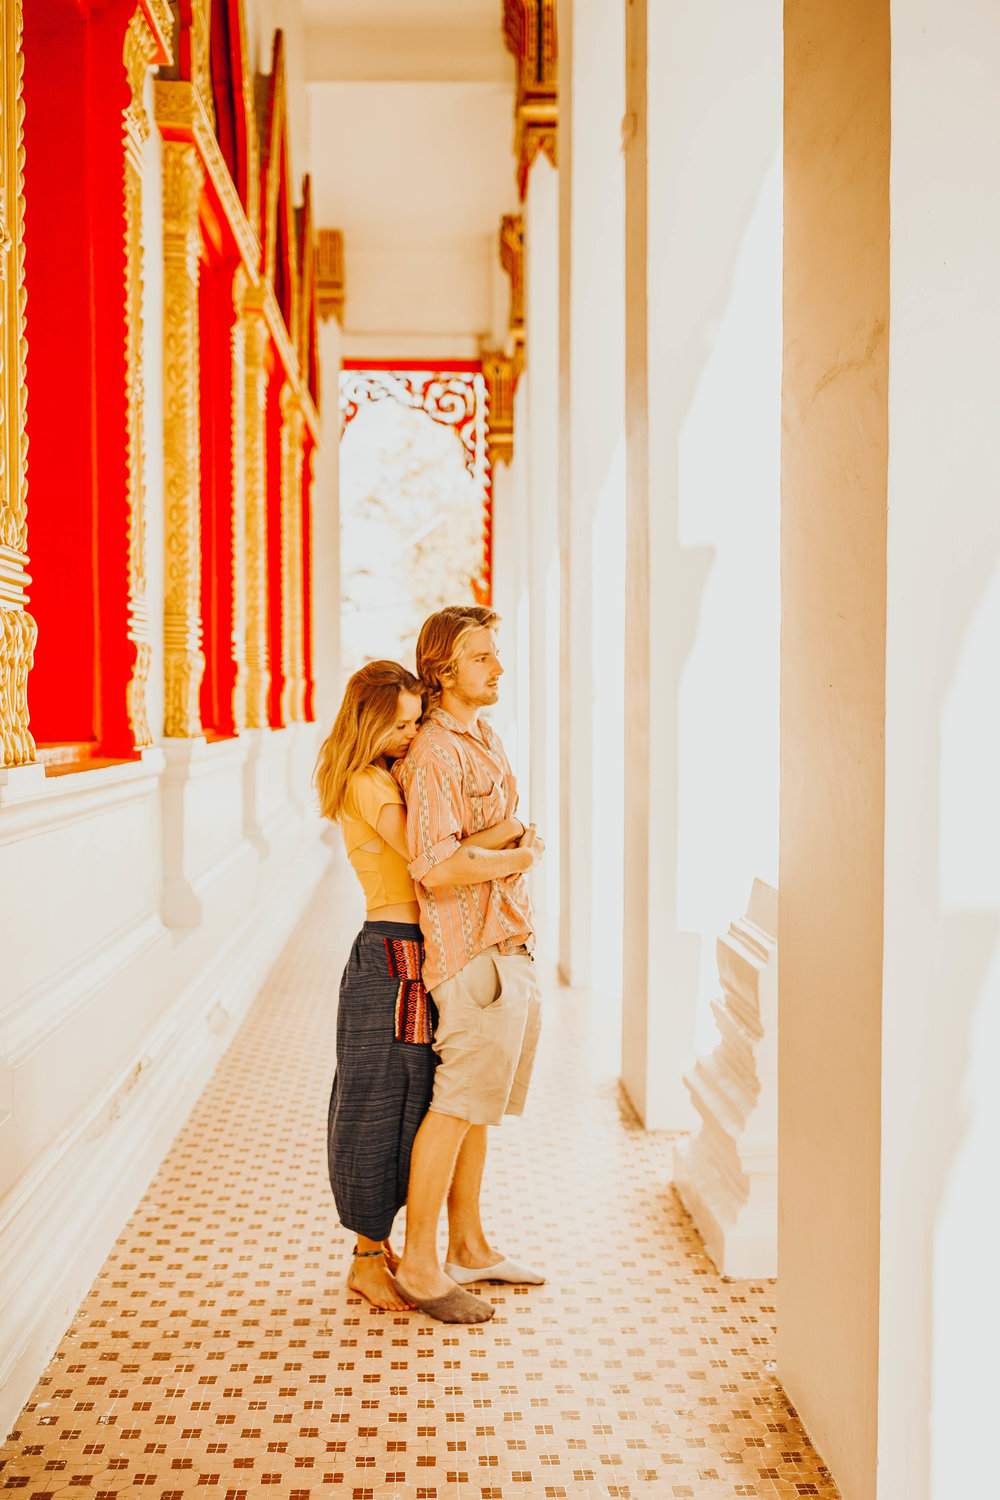 Julie and Will Old Town Phuket Couples Session 33.jpg